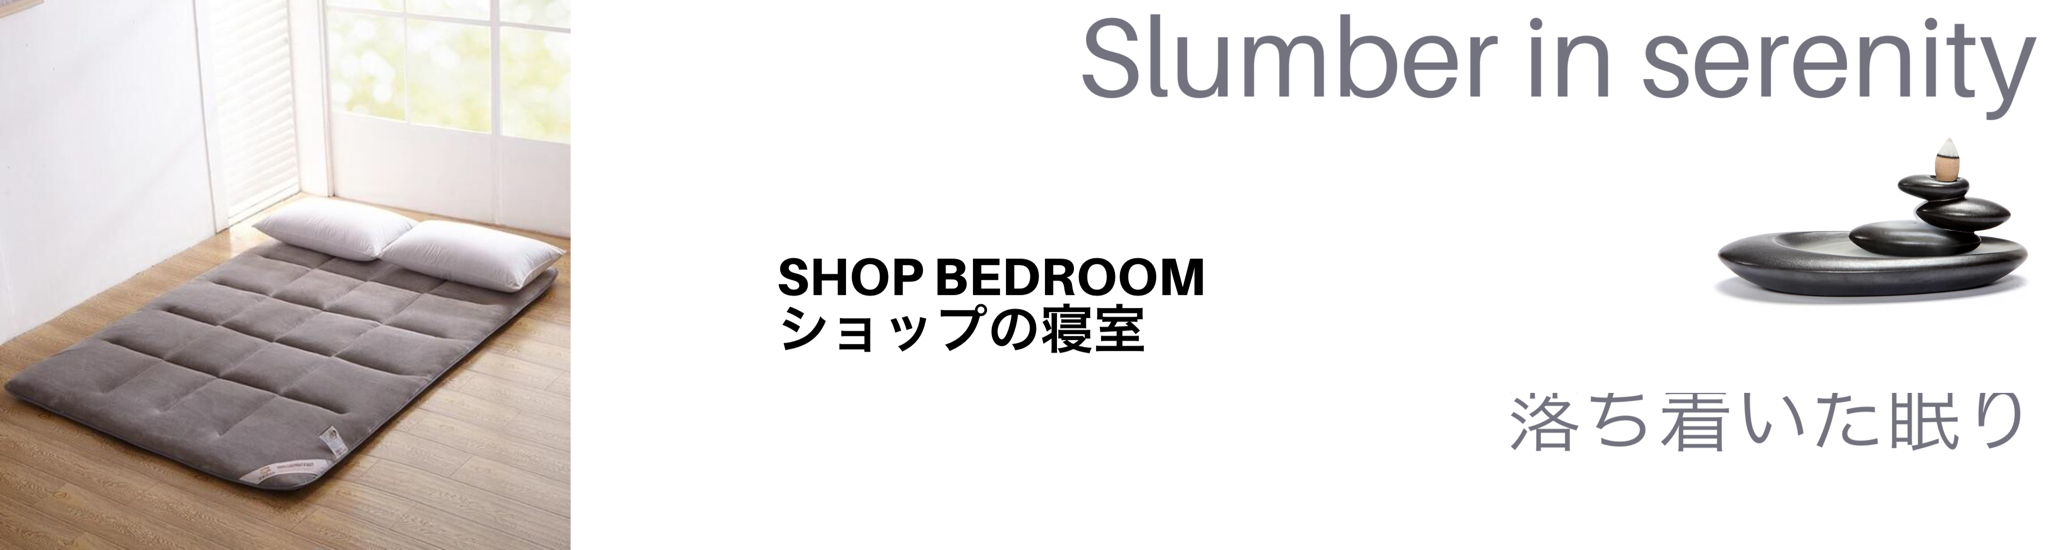 miTeigi Bedroom Collection | Japanese Apparel and Home Decor Retail Shopping